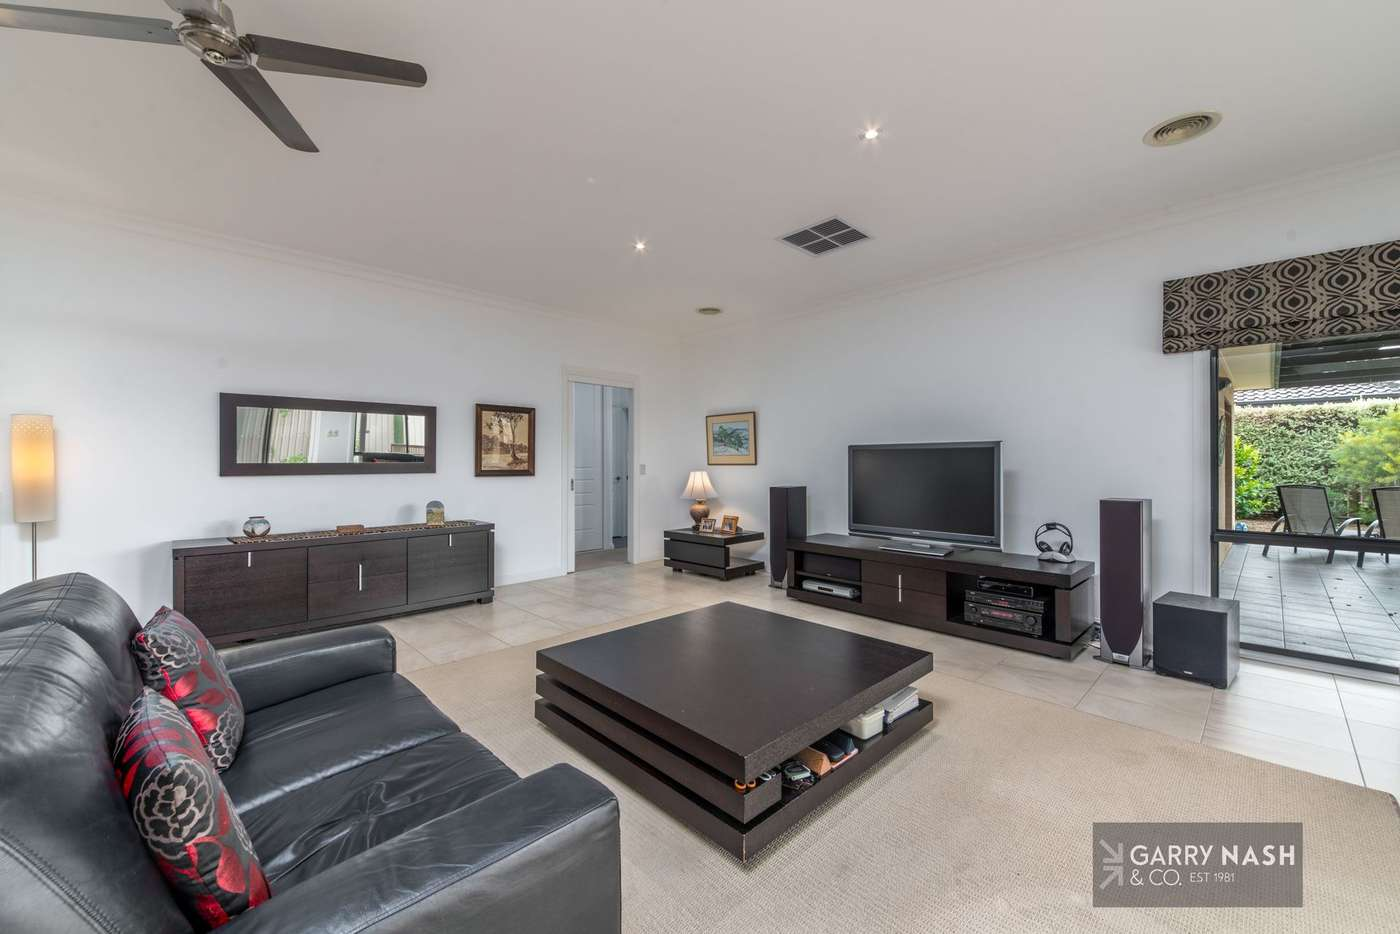 Seventh view of Homely house listing, 11 Red Gum Way, Wangaratta VIC 3677